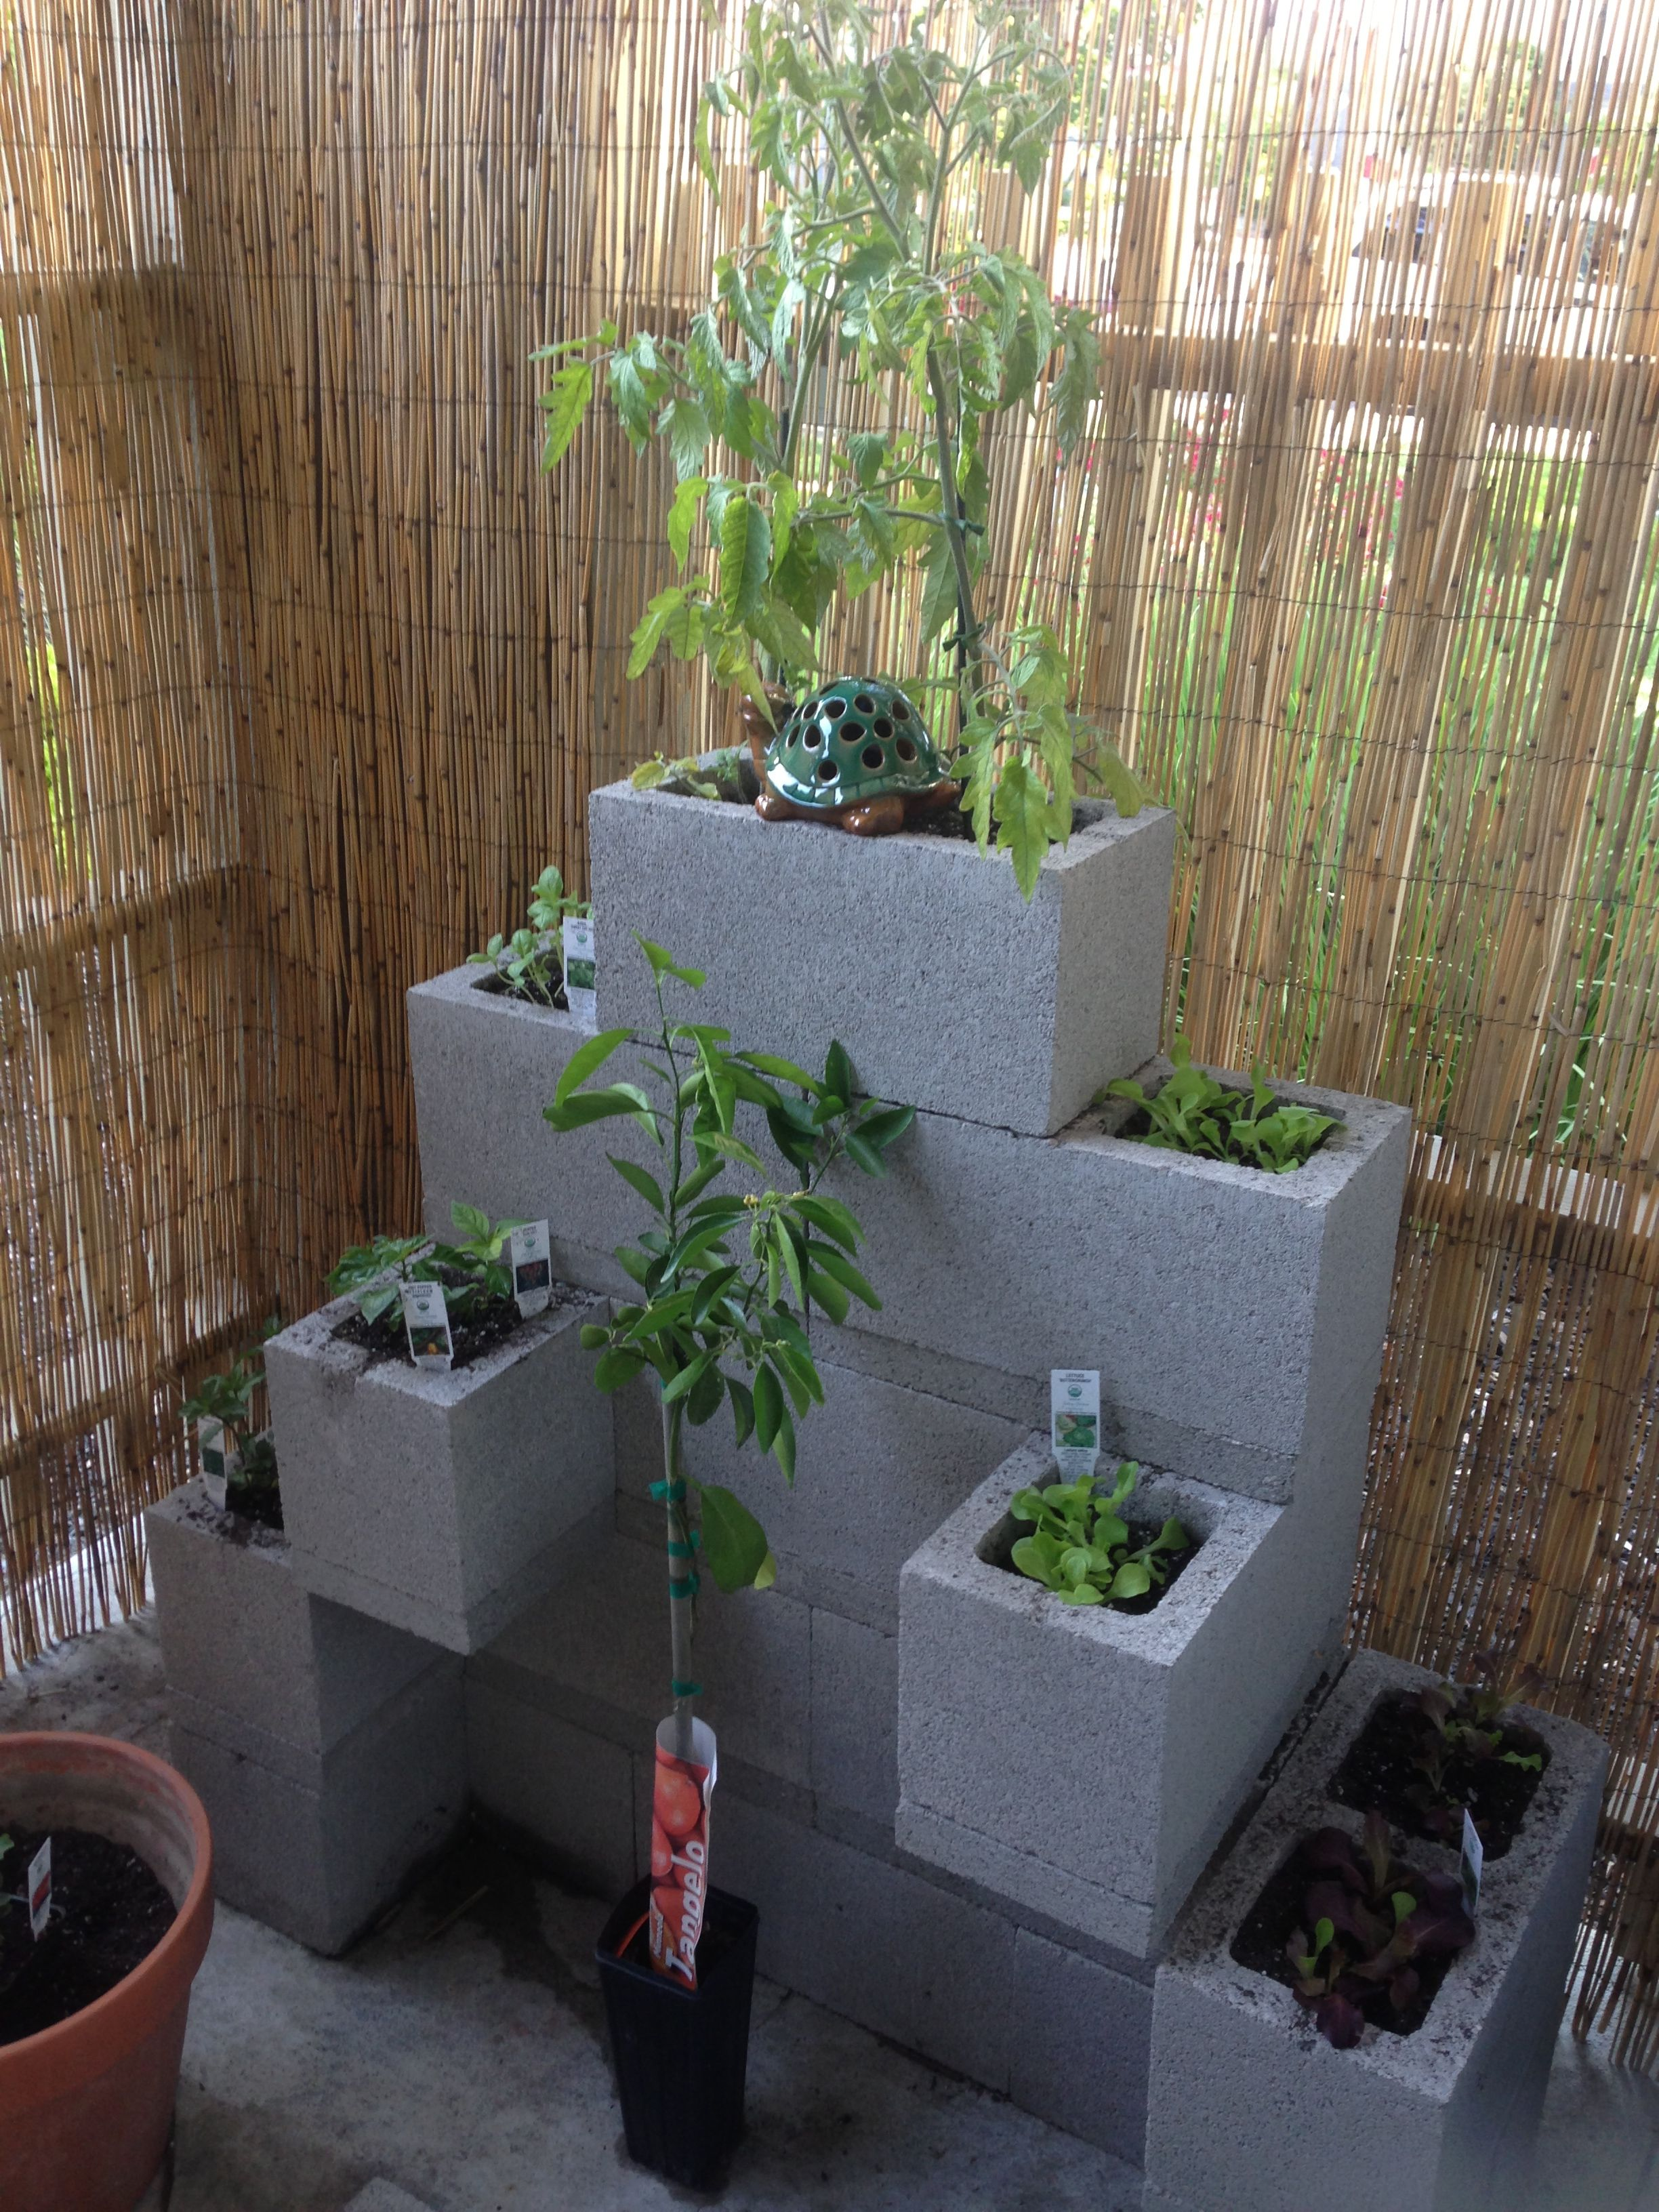 Urban garden, cinder block garden, small space gardening ideas ...